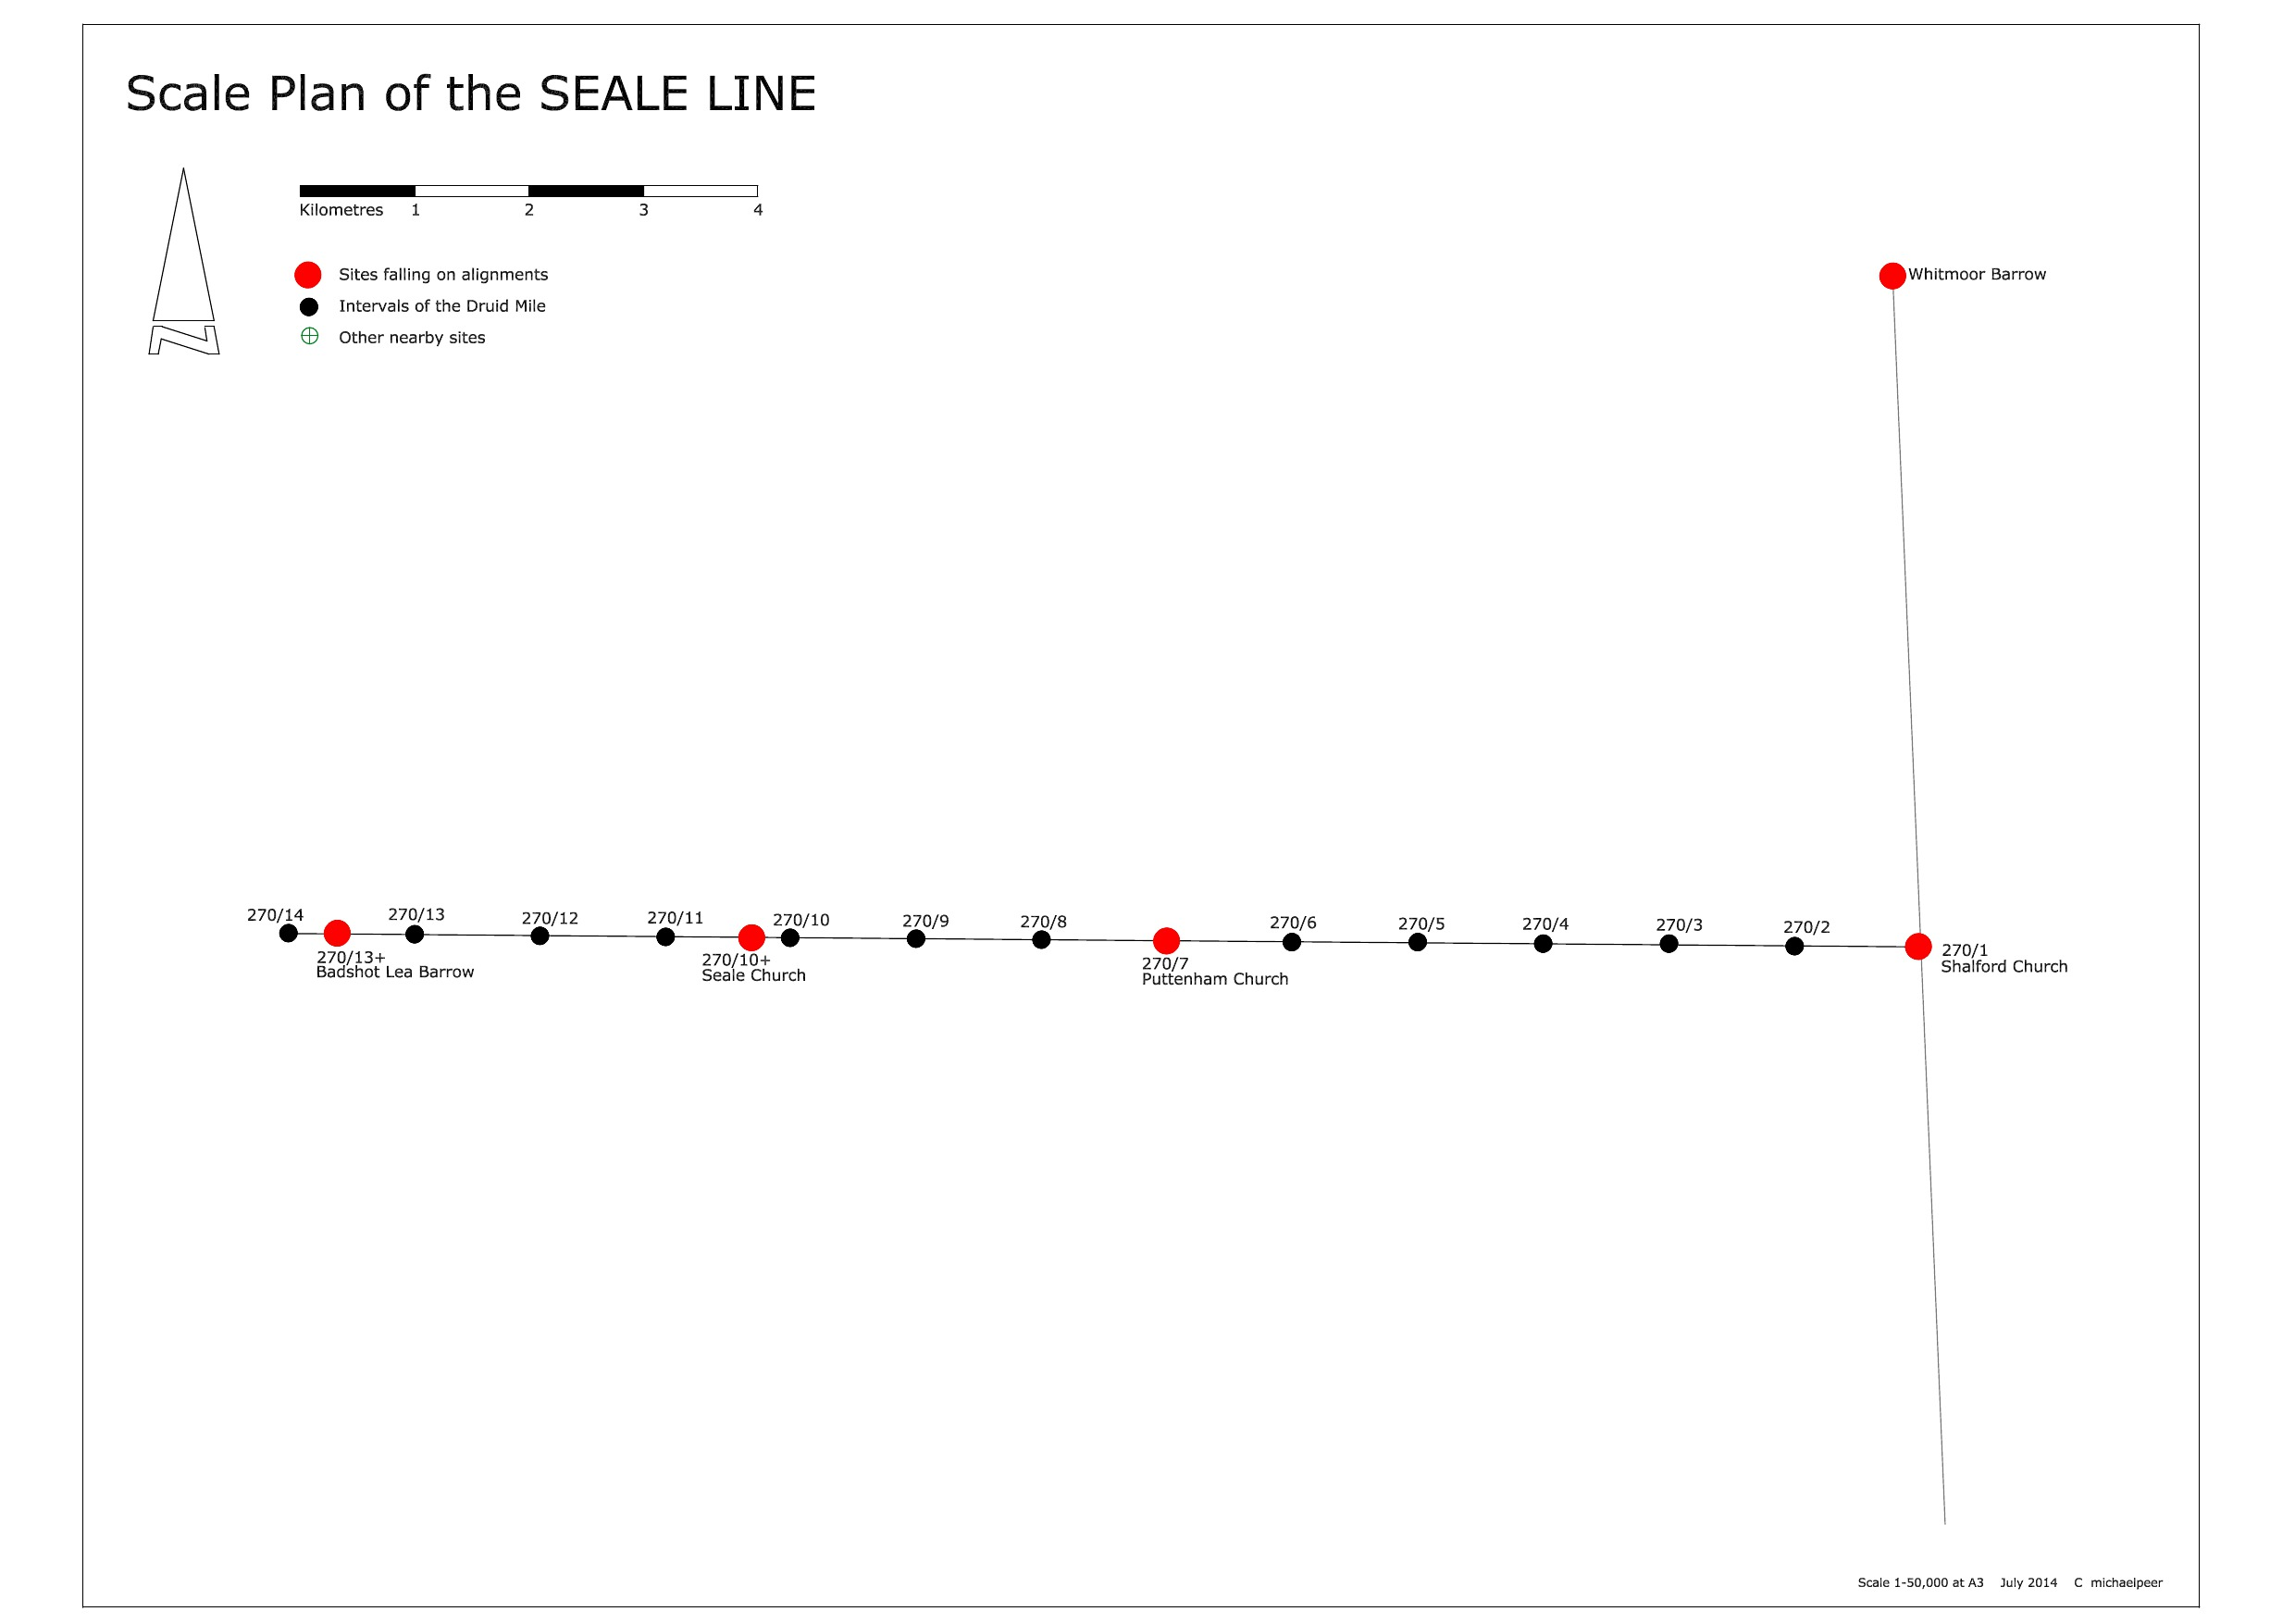 SCALE PLAN SEALE LINE